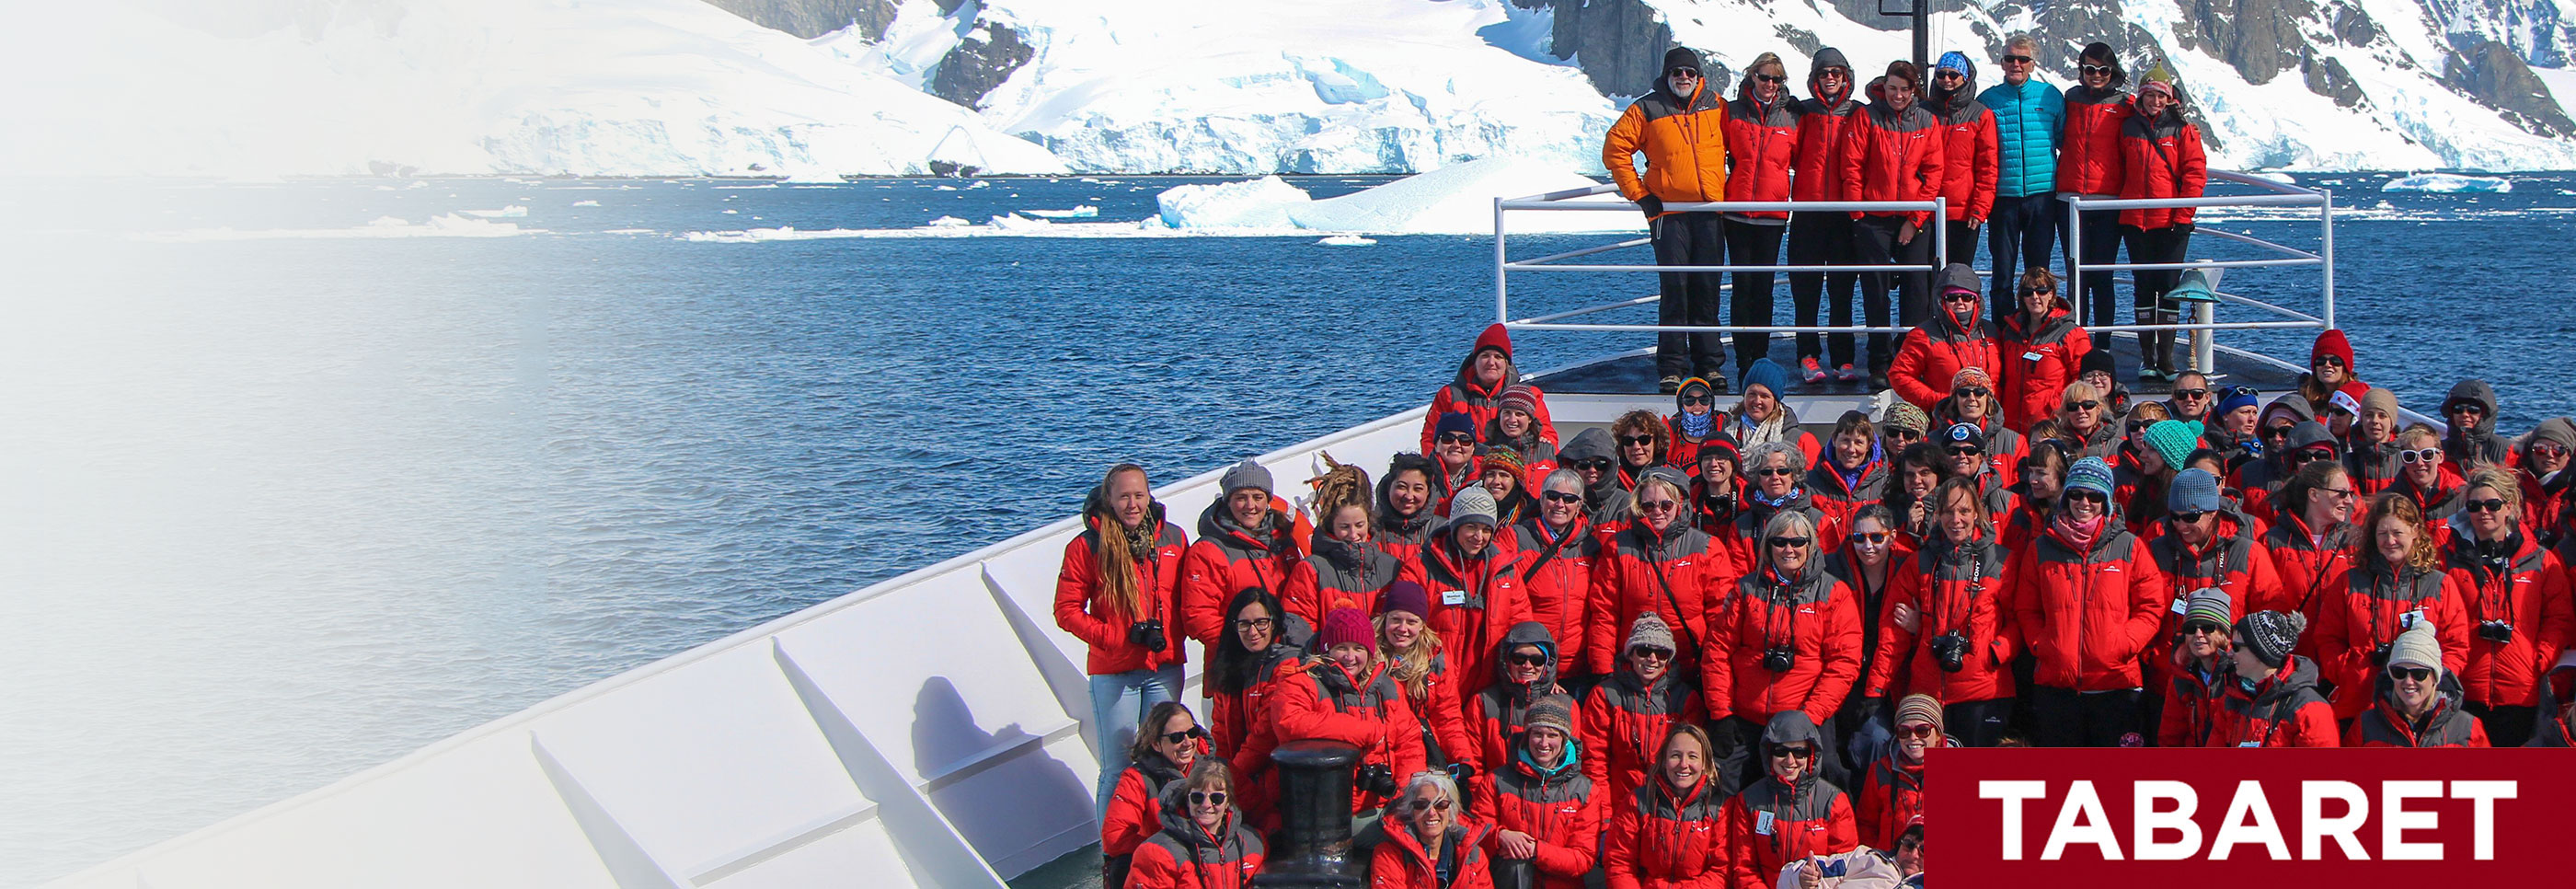 : Several dozen people, mostly women, wearing cold-weather gear on a ship deck, with snow-covered cliffs in the background.